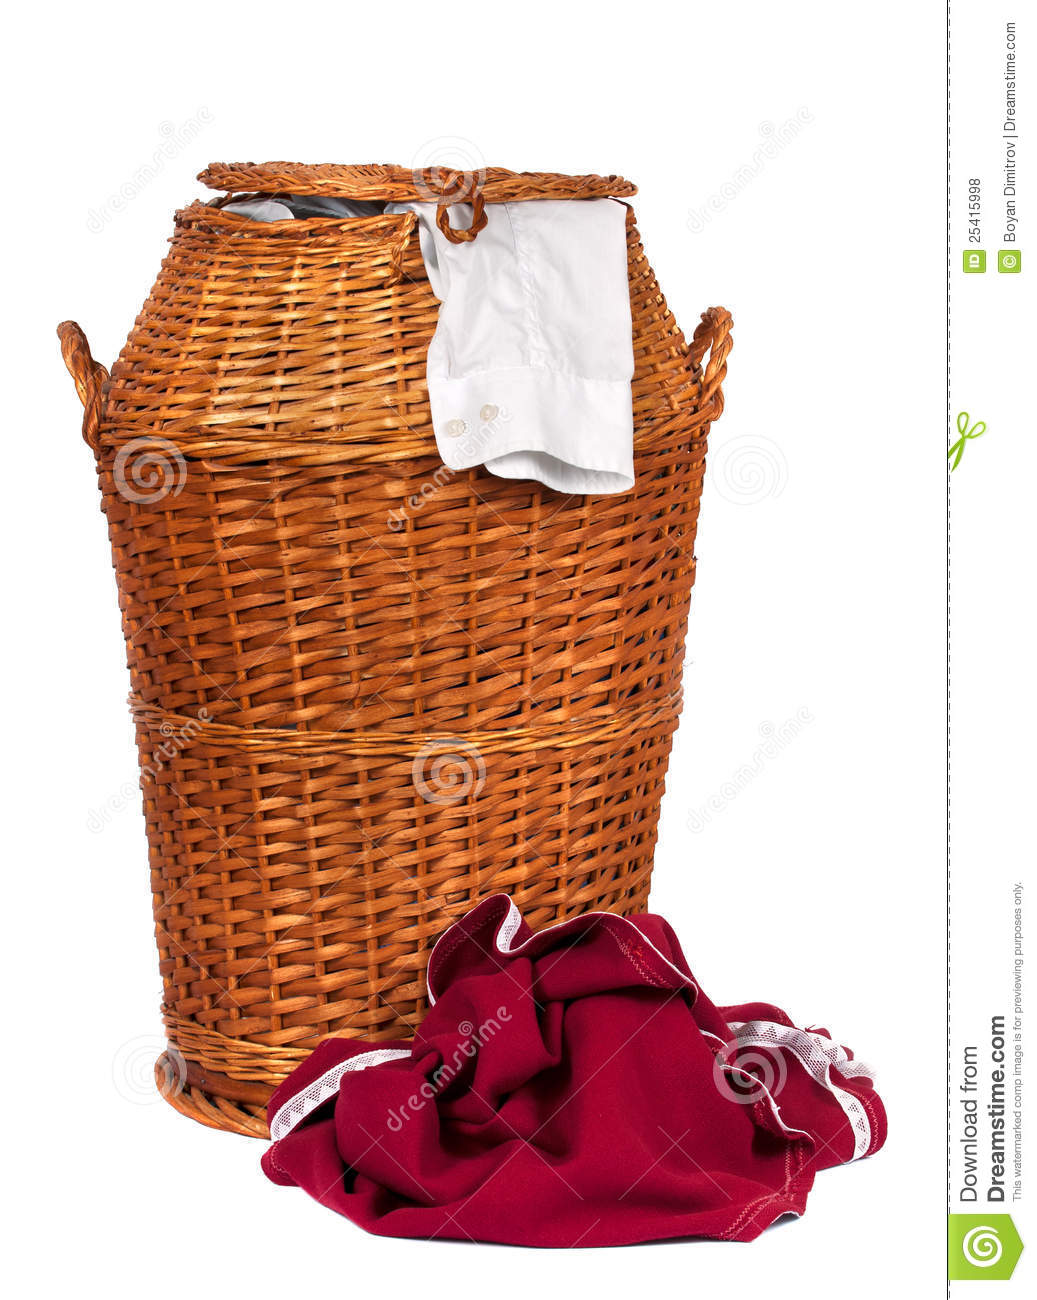 Animal Wicker Hamper Wicker Laundry Basket Royalty Free Stock Photos Image